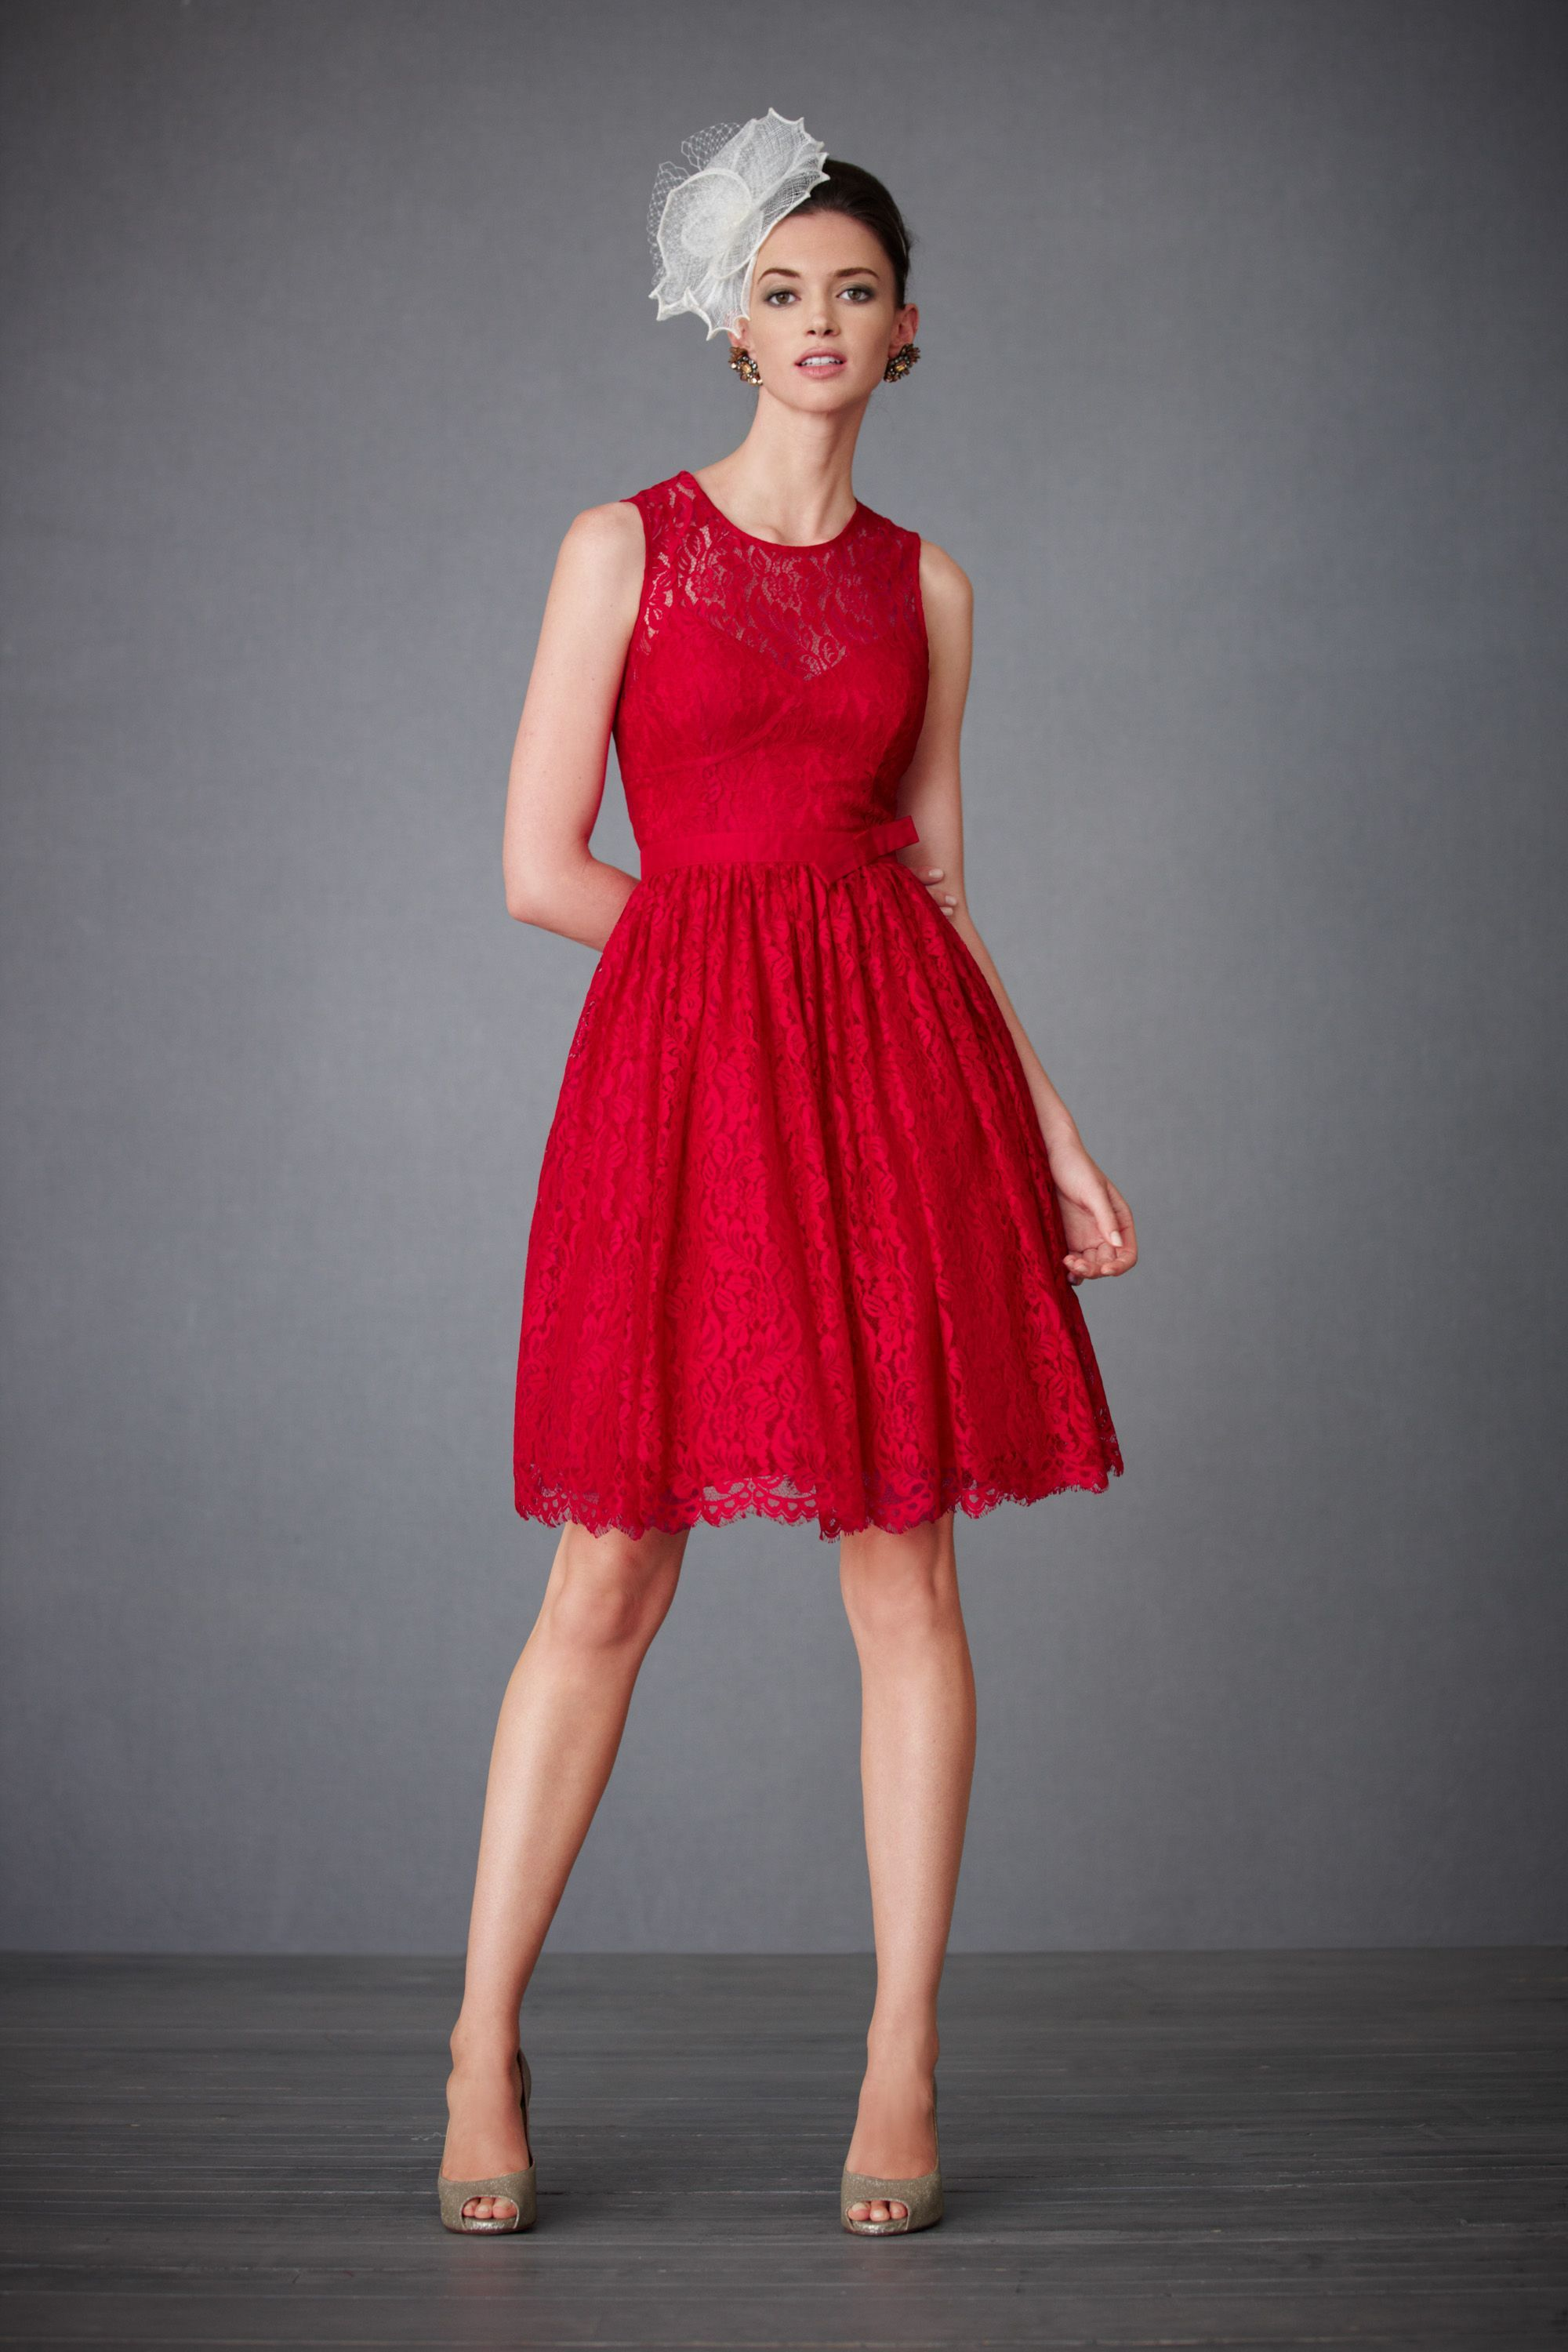 Oooh crimson bridesmaids dresses love the lace wedding ideas oooh crimson bridesmaids dresses love the lace ombrellifo Image collections